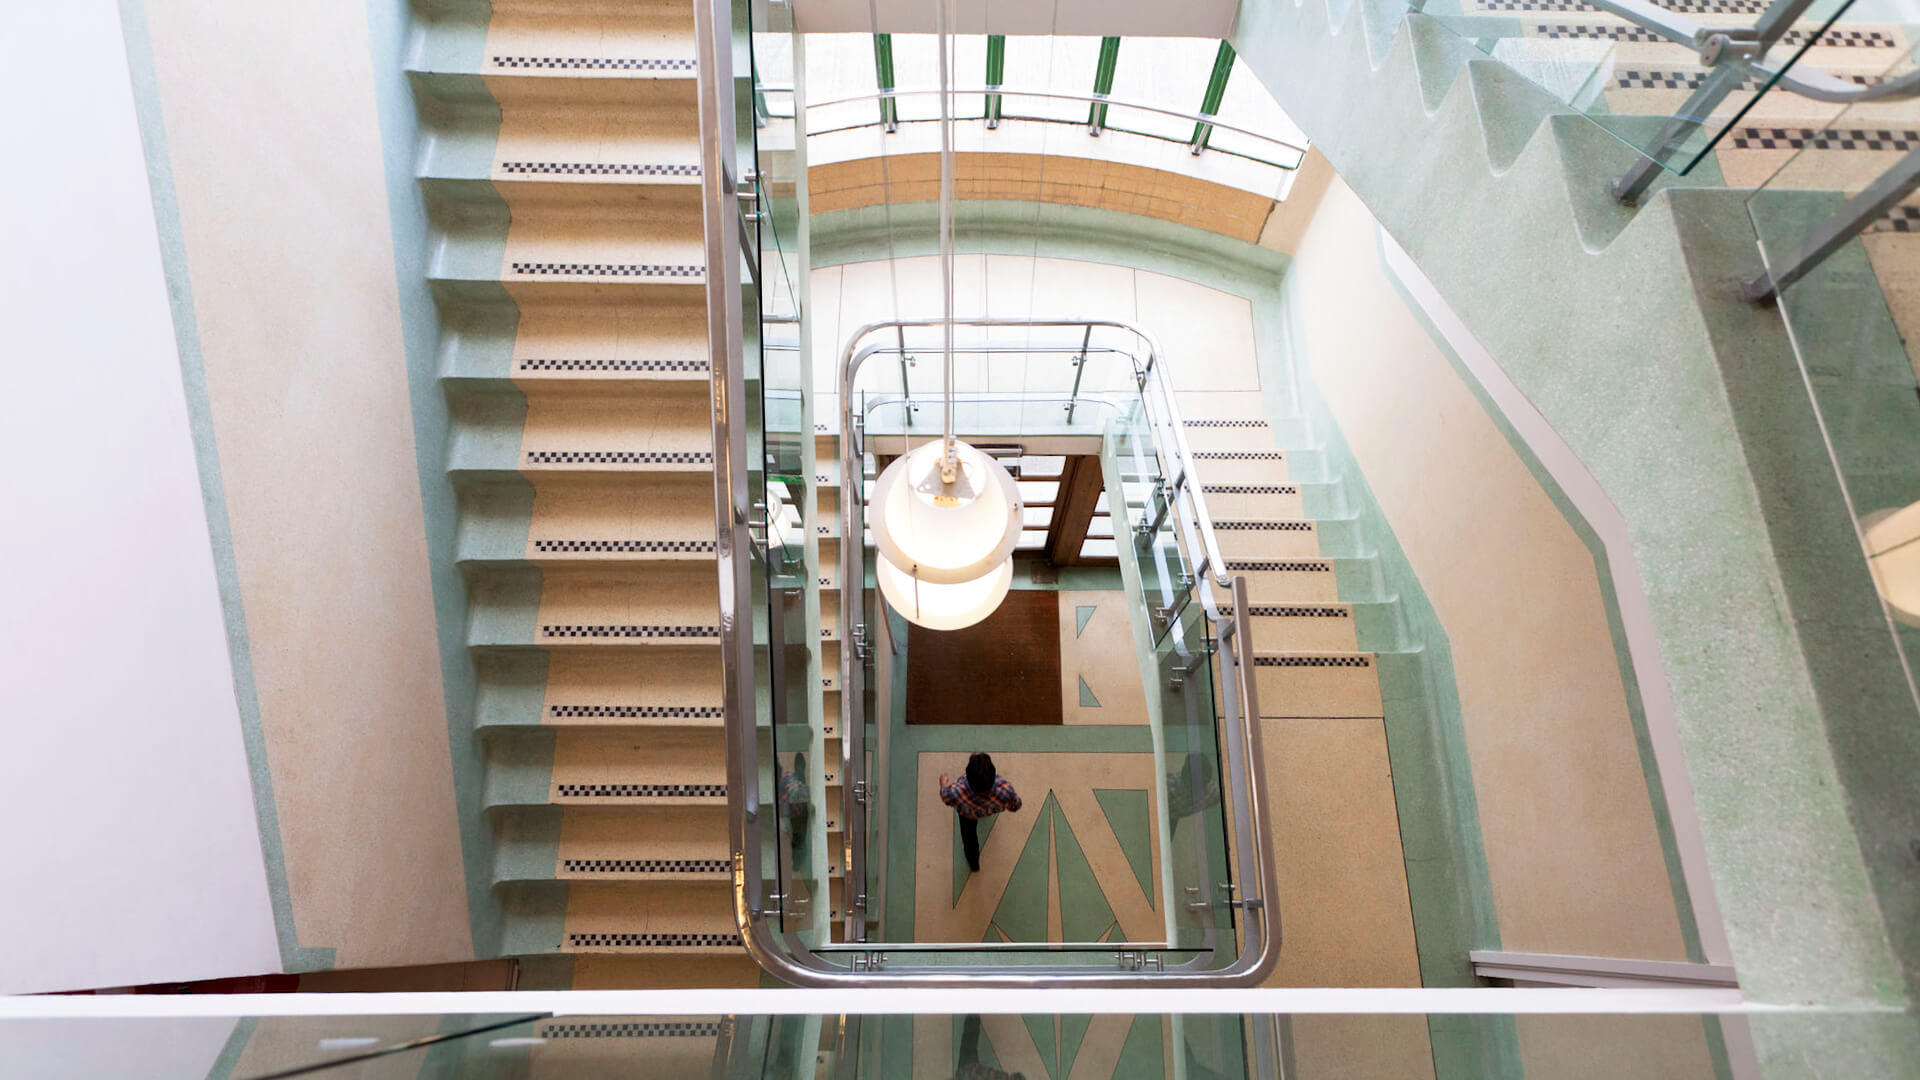 http://The%20Digital%20Depot%20Interior%20Stairs